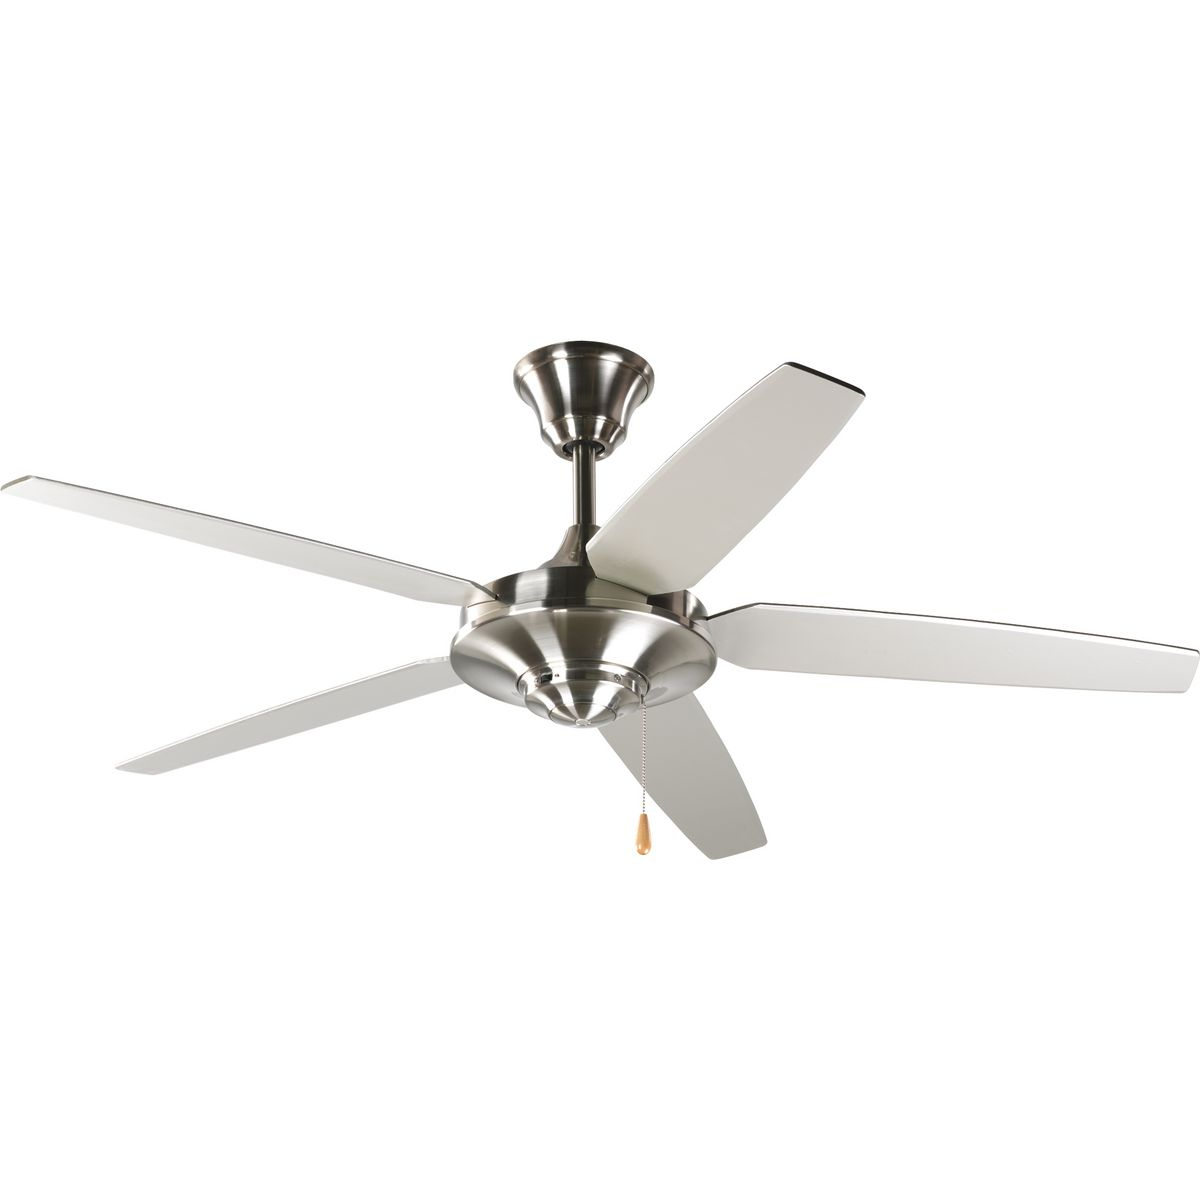 "PRO P2530-09 54"" AirPro Brushed Nickel Ceiling Fan w/Blades -MIM-"